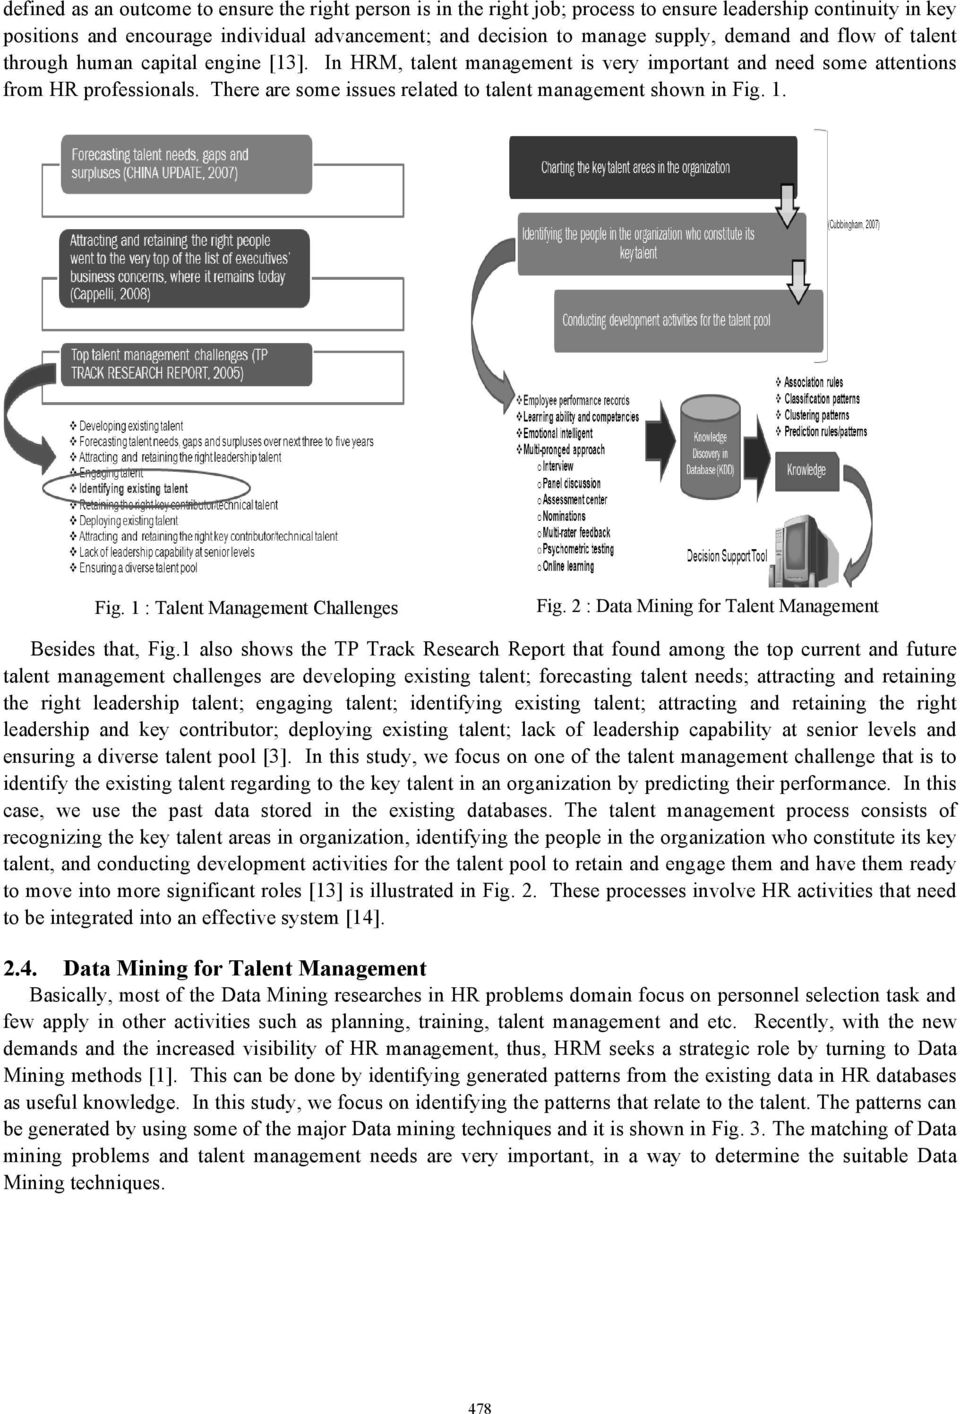 There are some issues related to talent management shown in Fig. 1. Fig. 1 : Talent Management Challenges Fig. 2 : Data Mining for Talent Management Besides that, Fig.